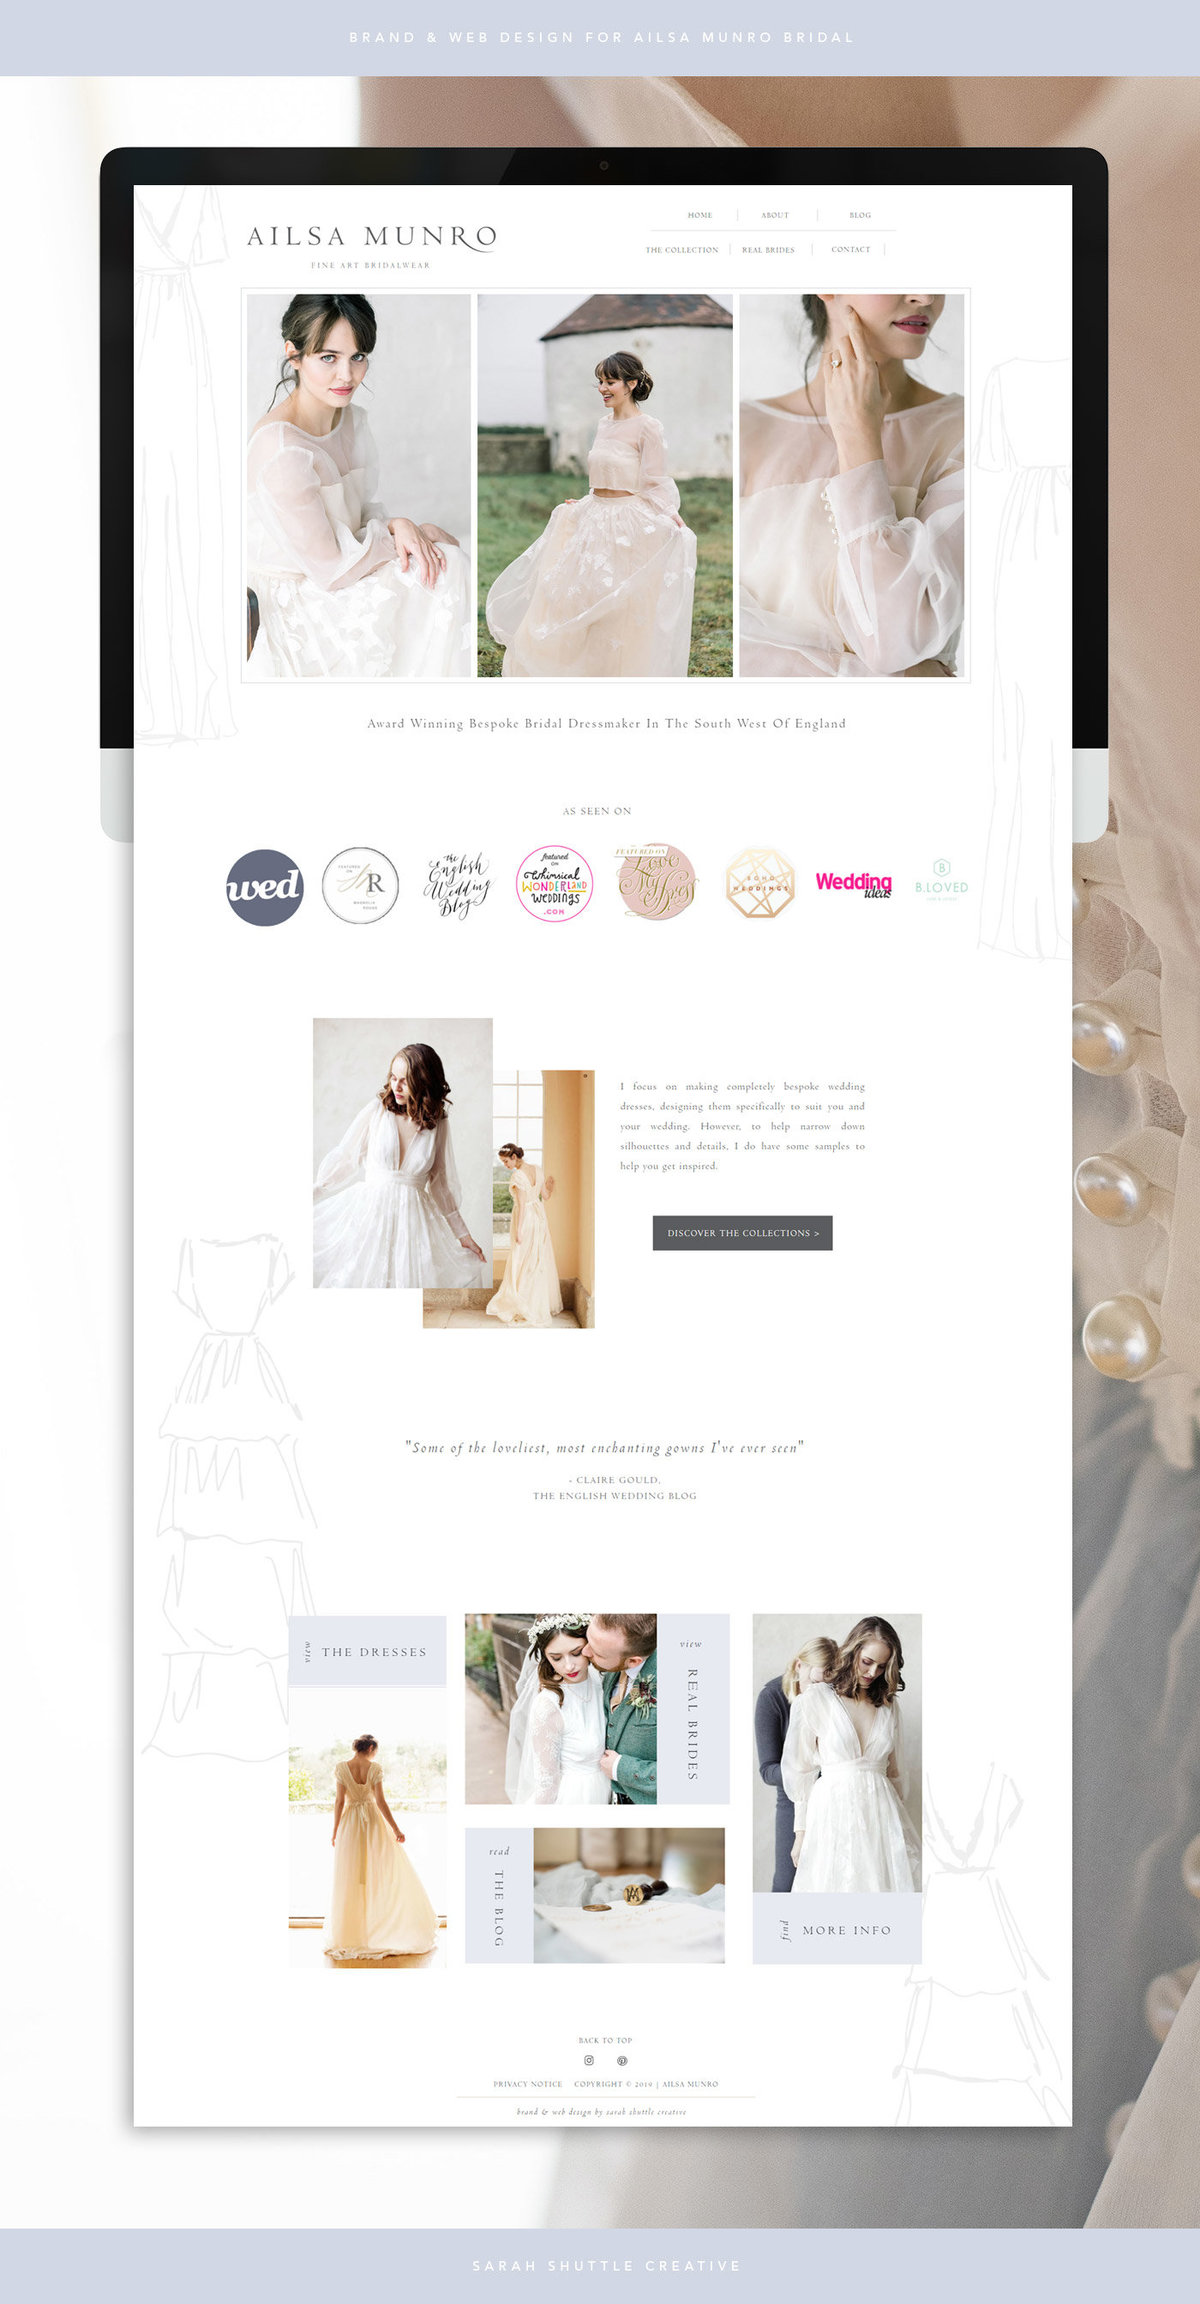 Feminine web design on Showit for wedding dress designer